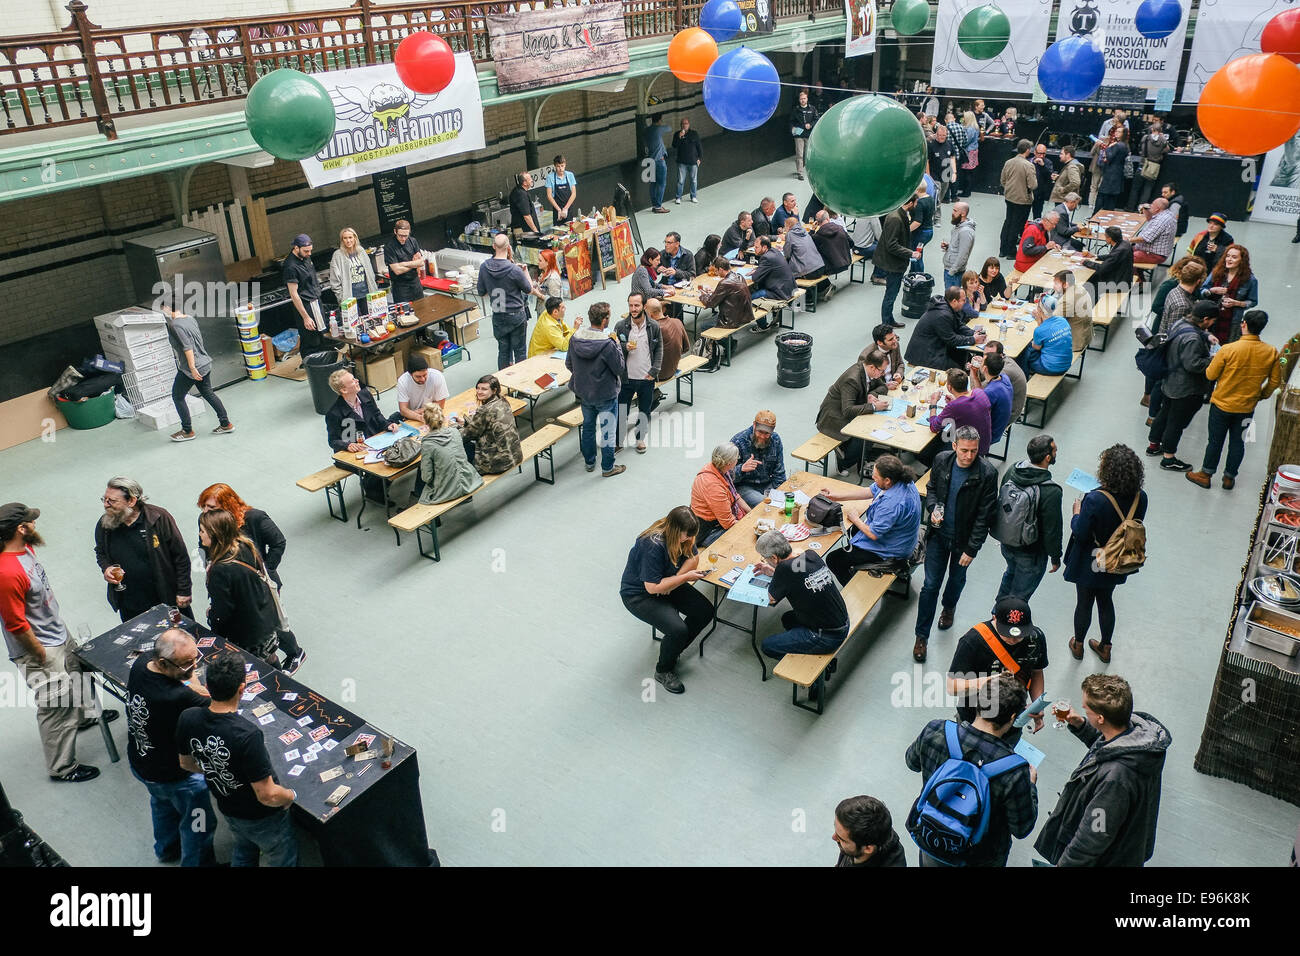 Independent Manchester Beer Convention, 2014 - Stock Image